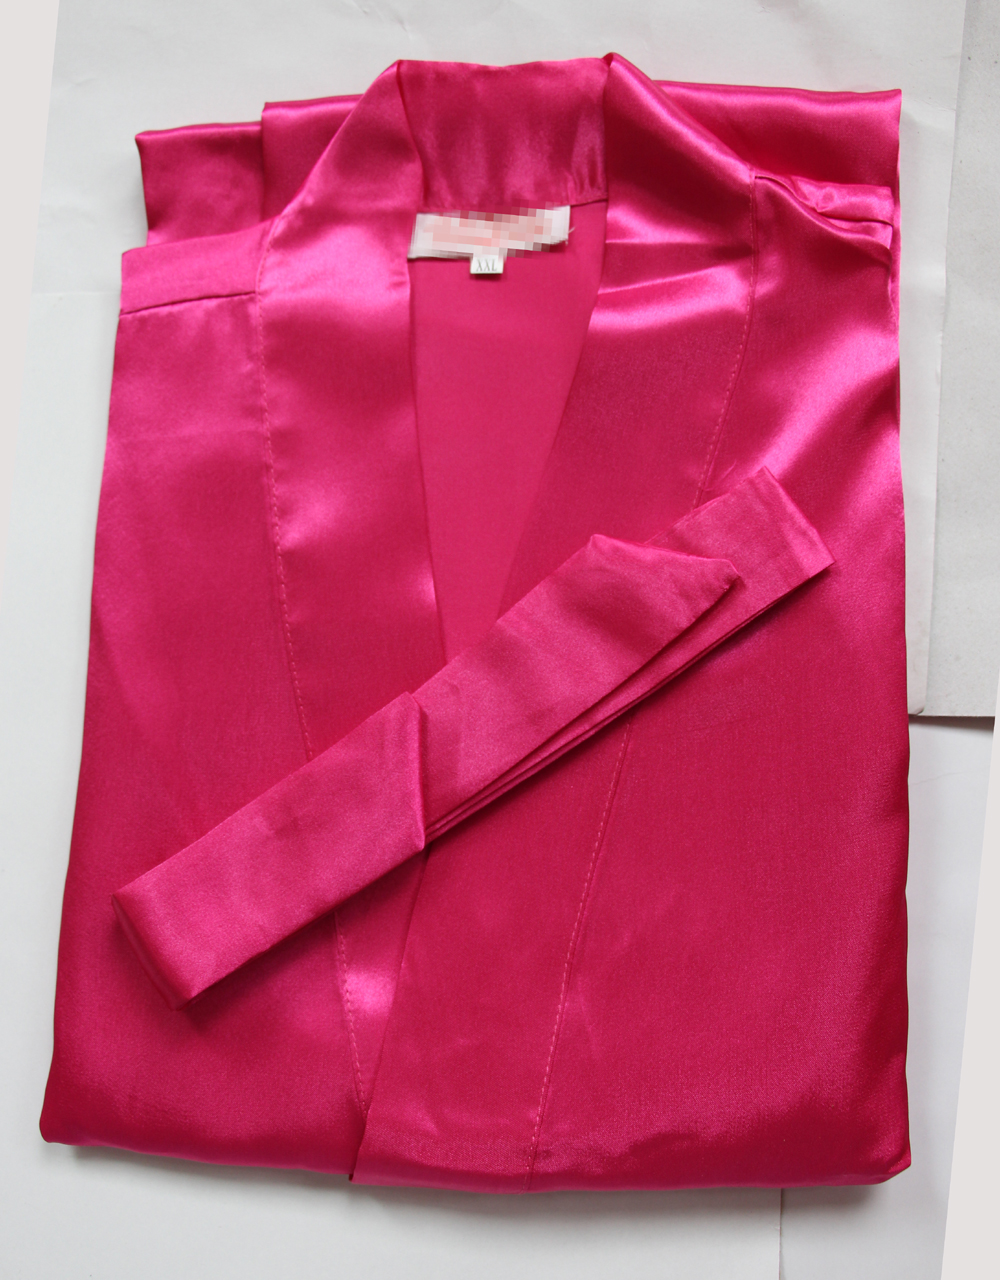 New Hot Pink Silk Bridesmaid Wedding Robe Women Short Sexy Lingerie Kimono Bath Gown Sleepwear Plus Size S M L XL XXL XXXL NR051